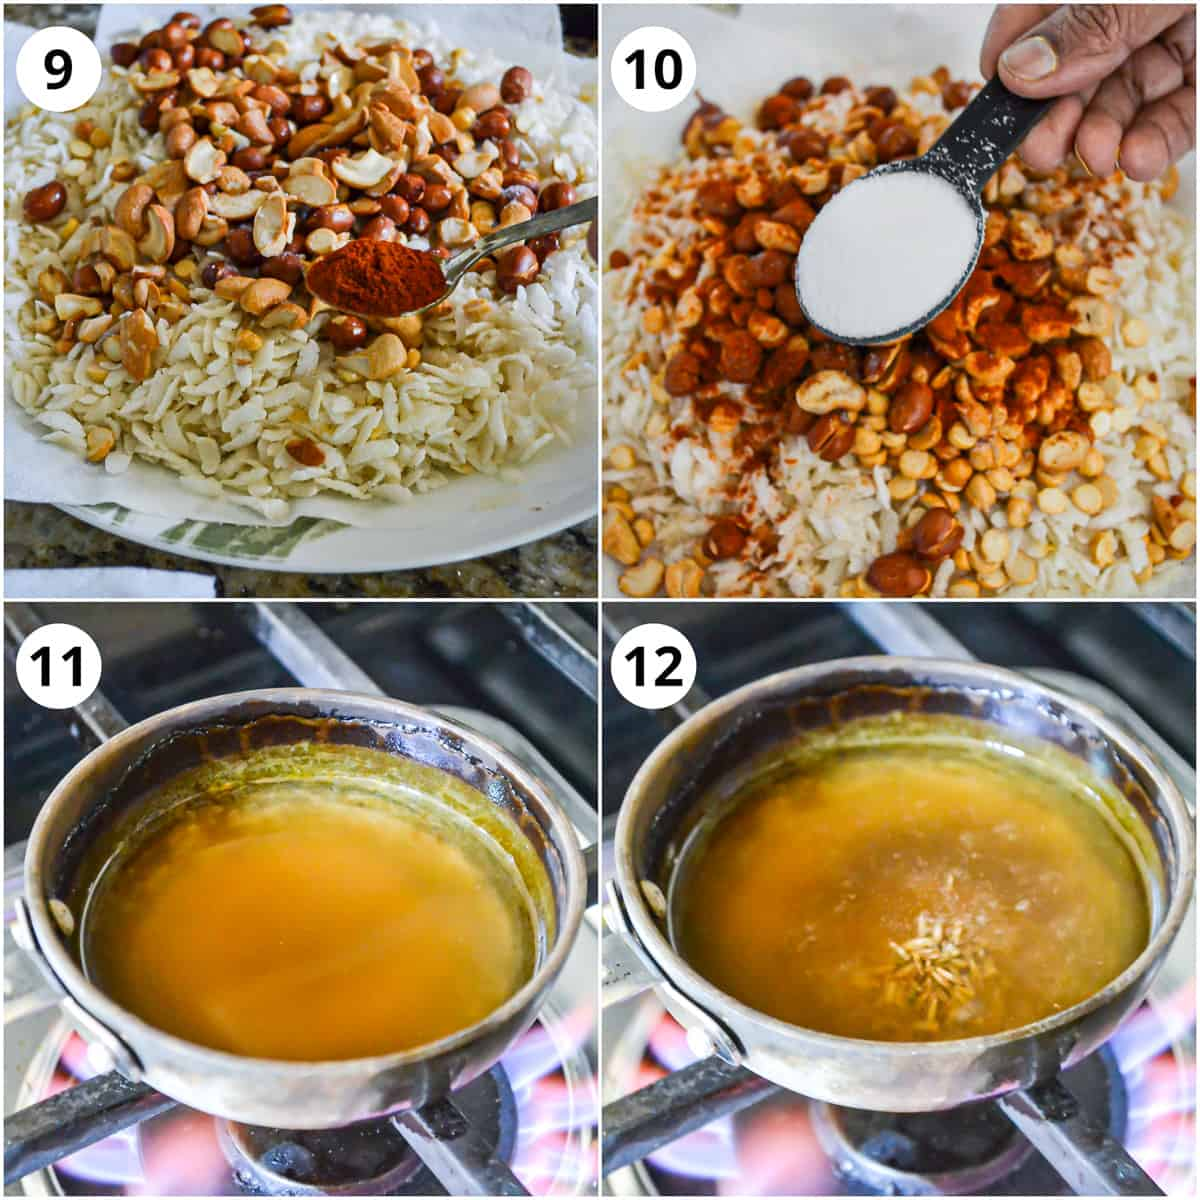 Steps for mixing sugar and red chilli with poha and doing the tadka